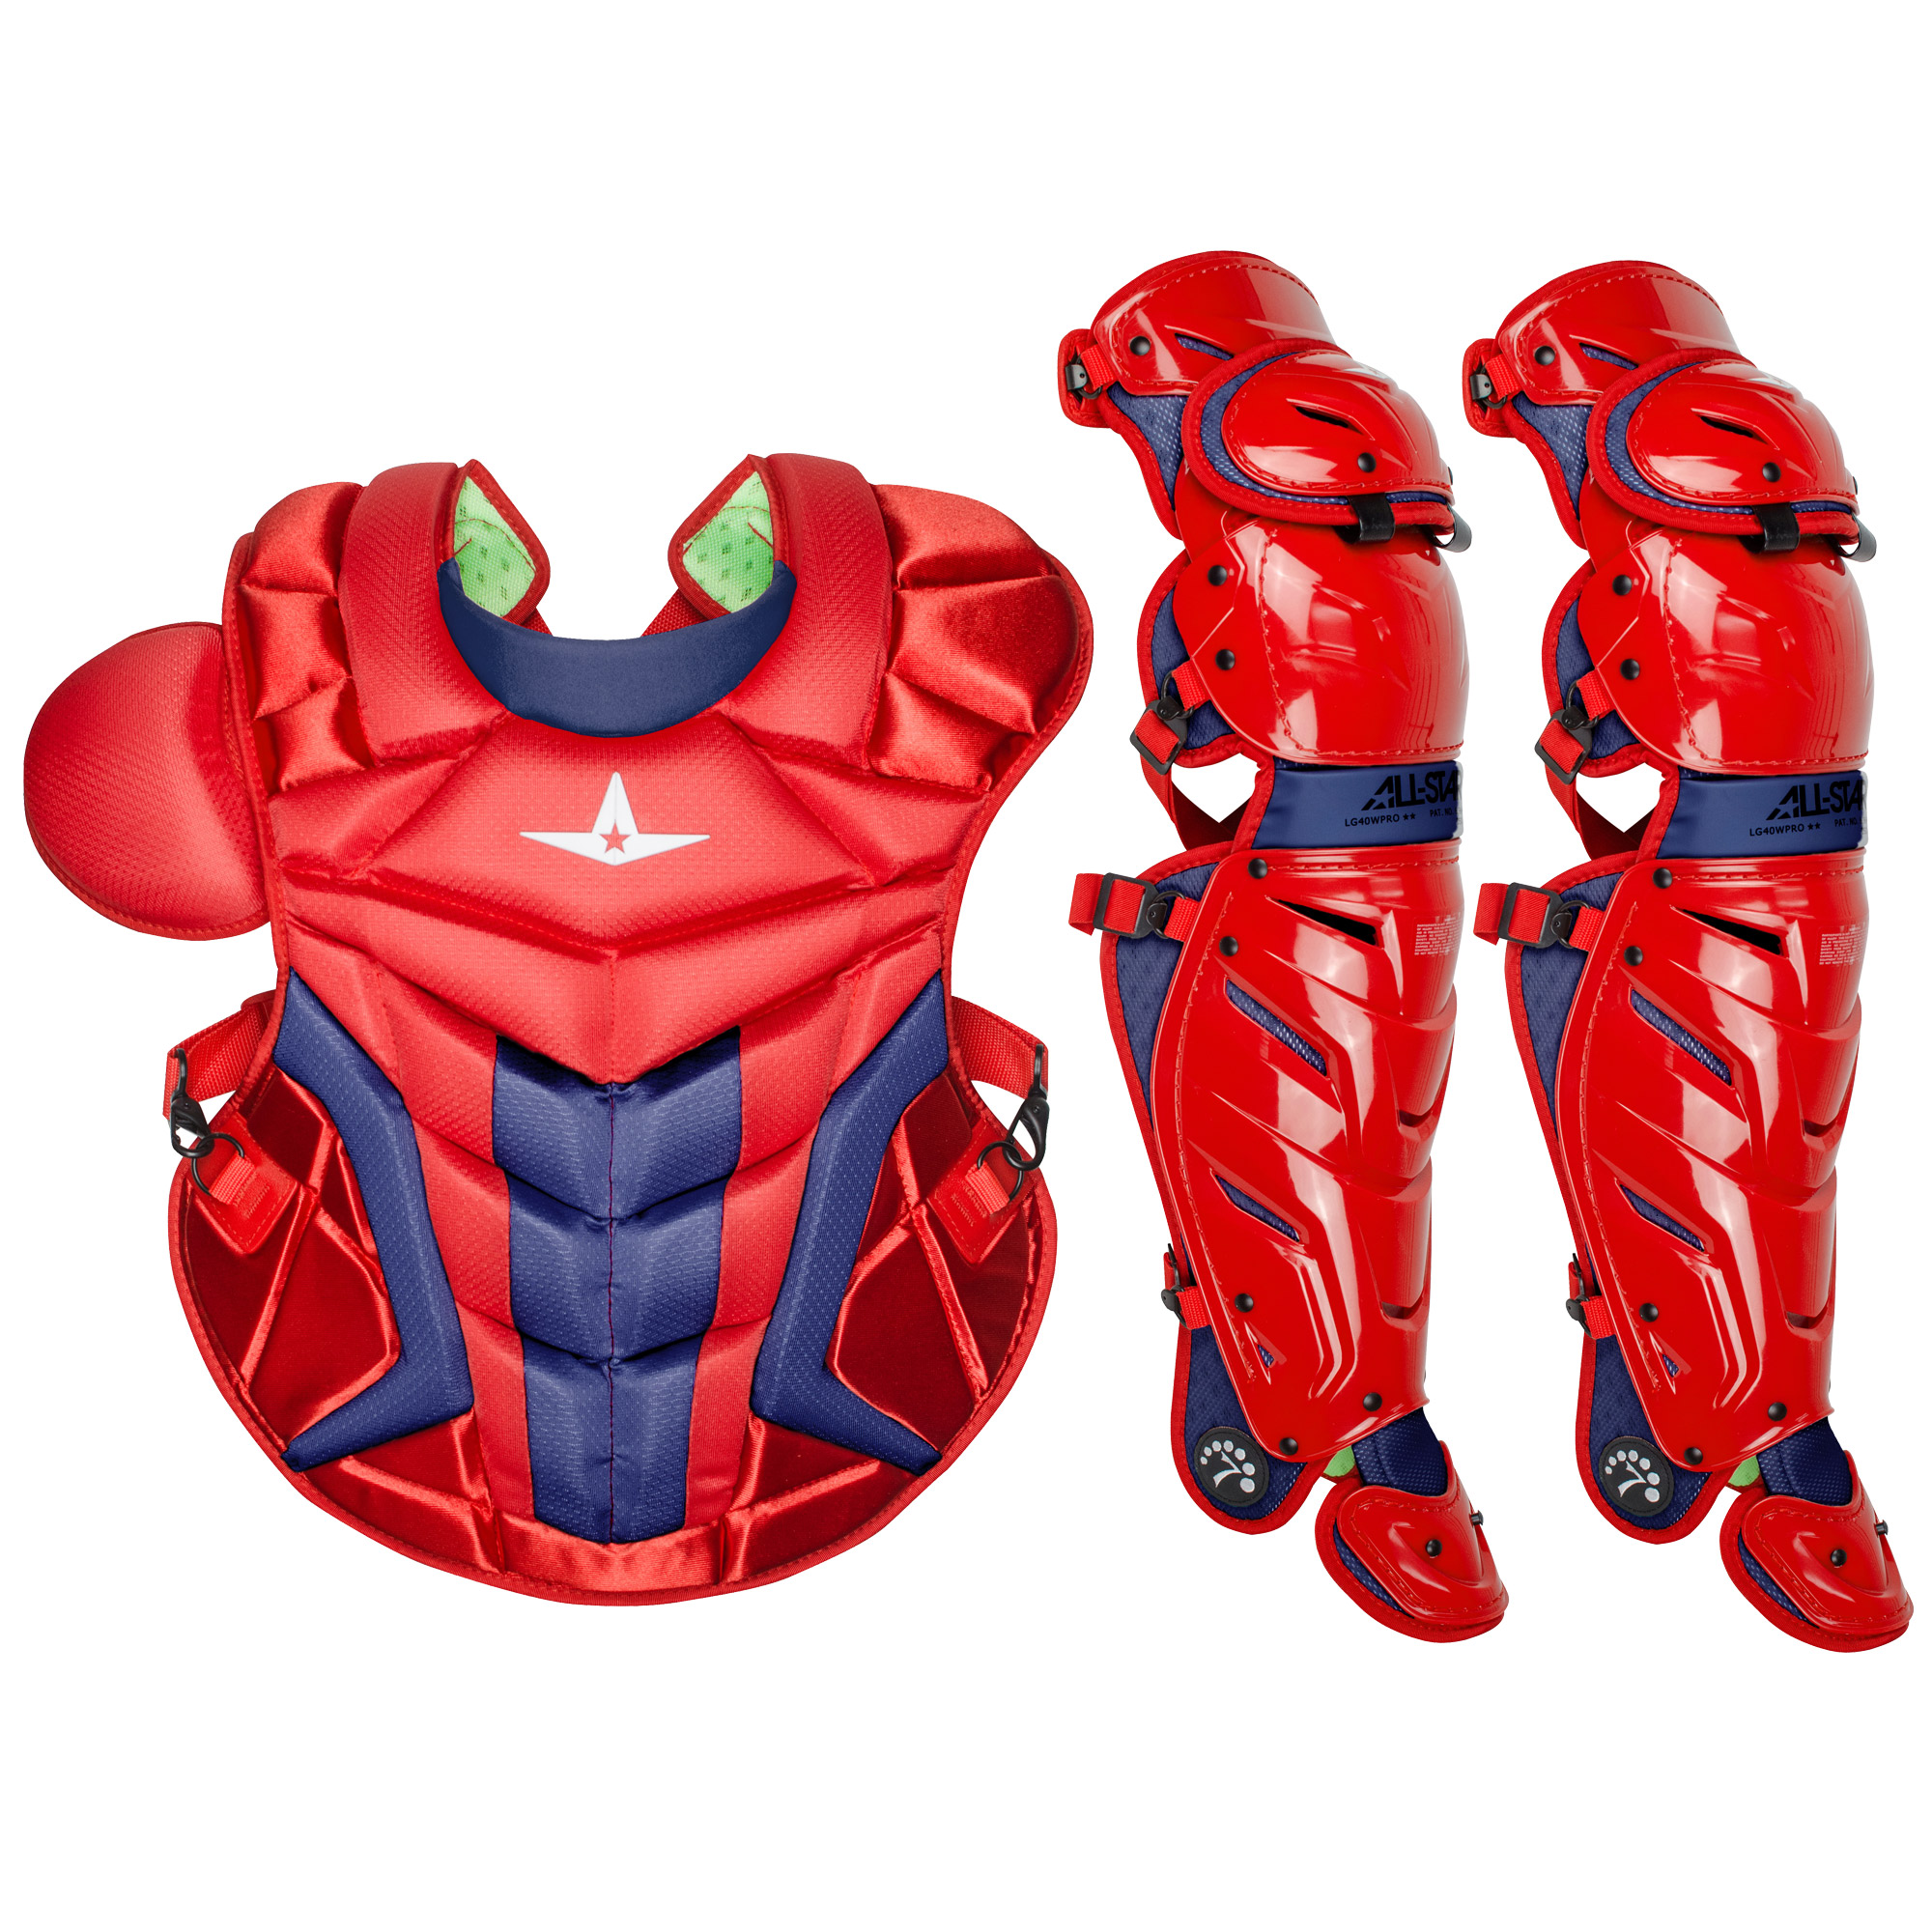 All-Star System7 Axis Adult Baseball Catcher's Gear